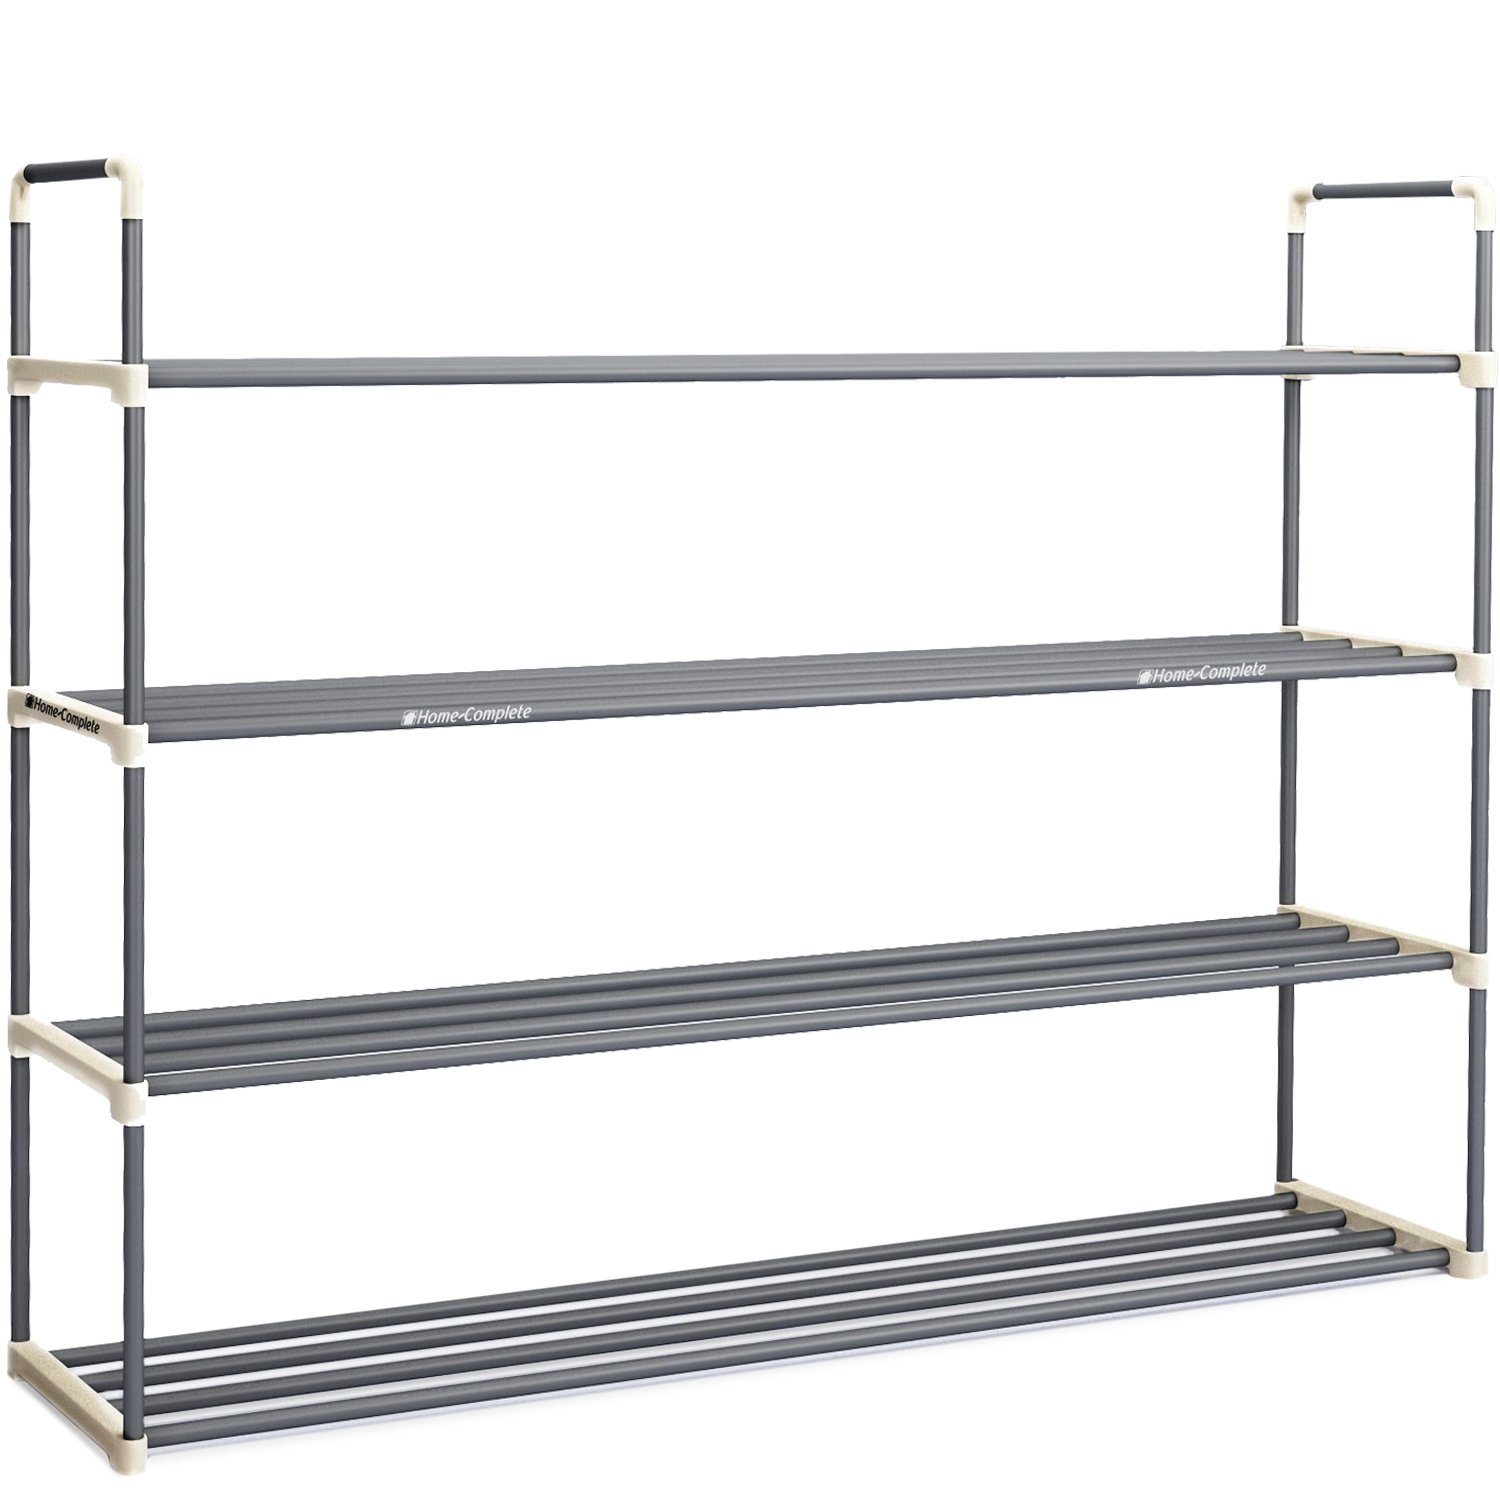 Shoe Rack with 4 Shelves-Four Tiers for 24 Pairs-For Bedroom, Entryway, Hallway, and Closet- Space Saving Storage and Organization by Home-Complete